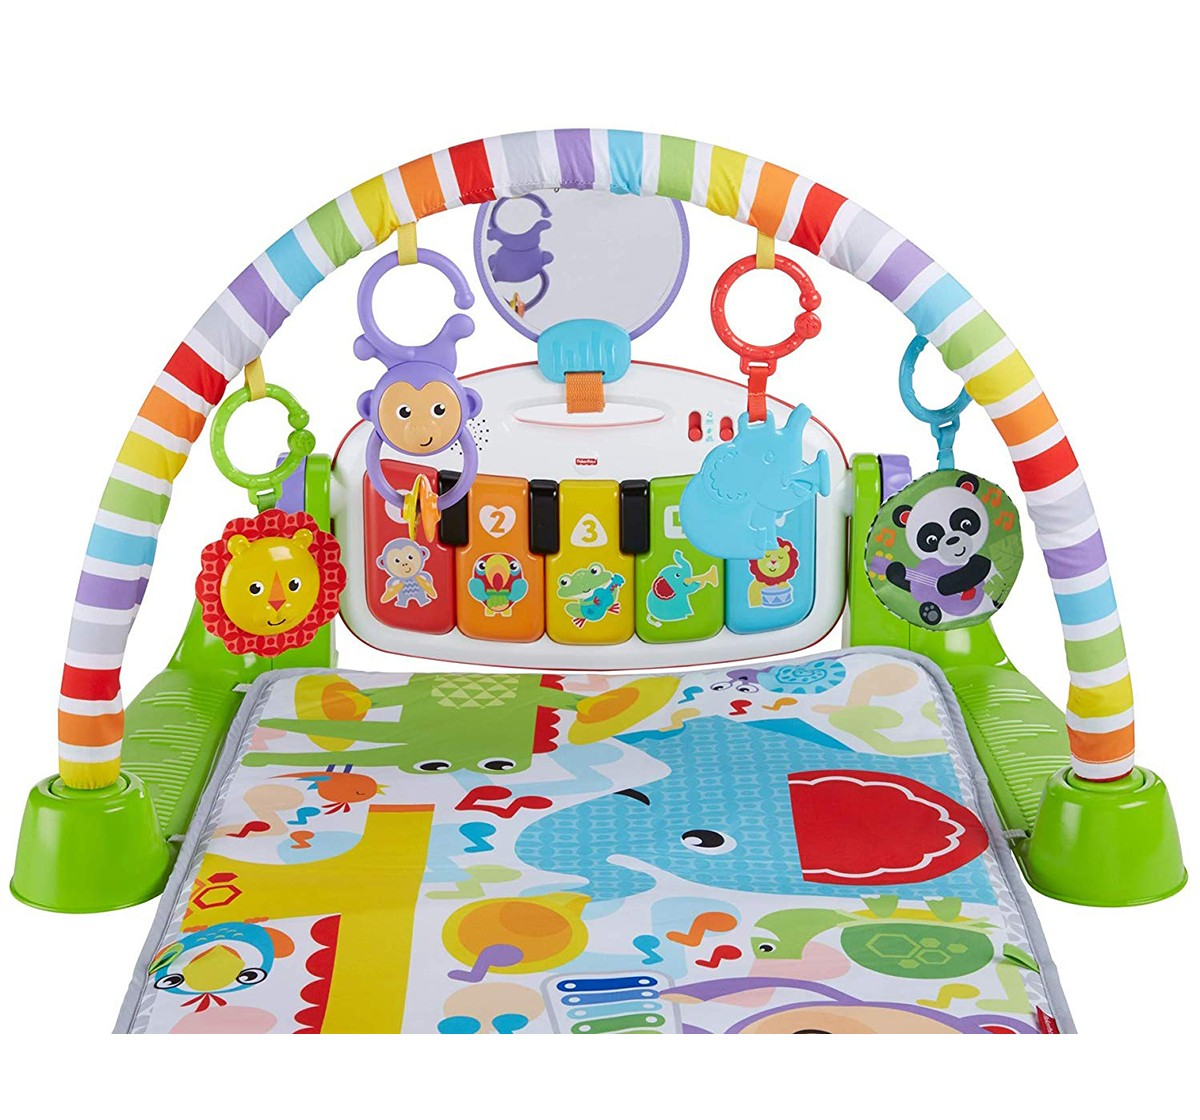 Fisher Price Deluxe Kick And Play Piano Gym Baby Gear for Kids age 6M+